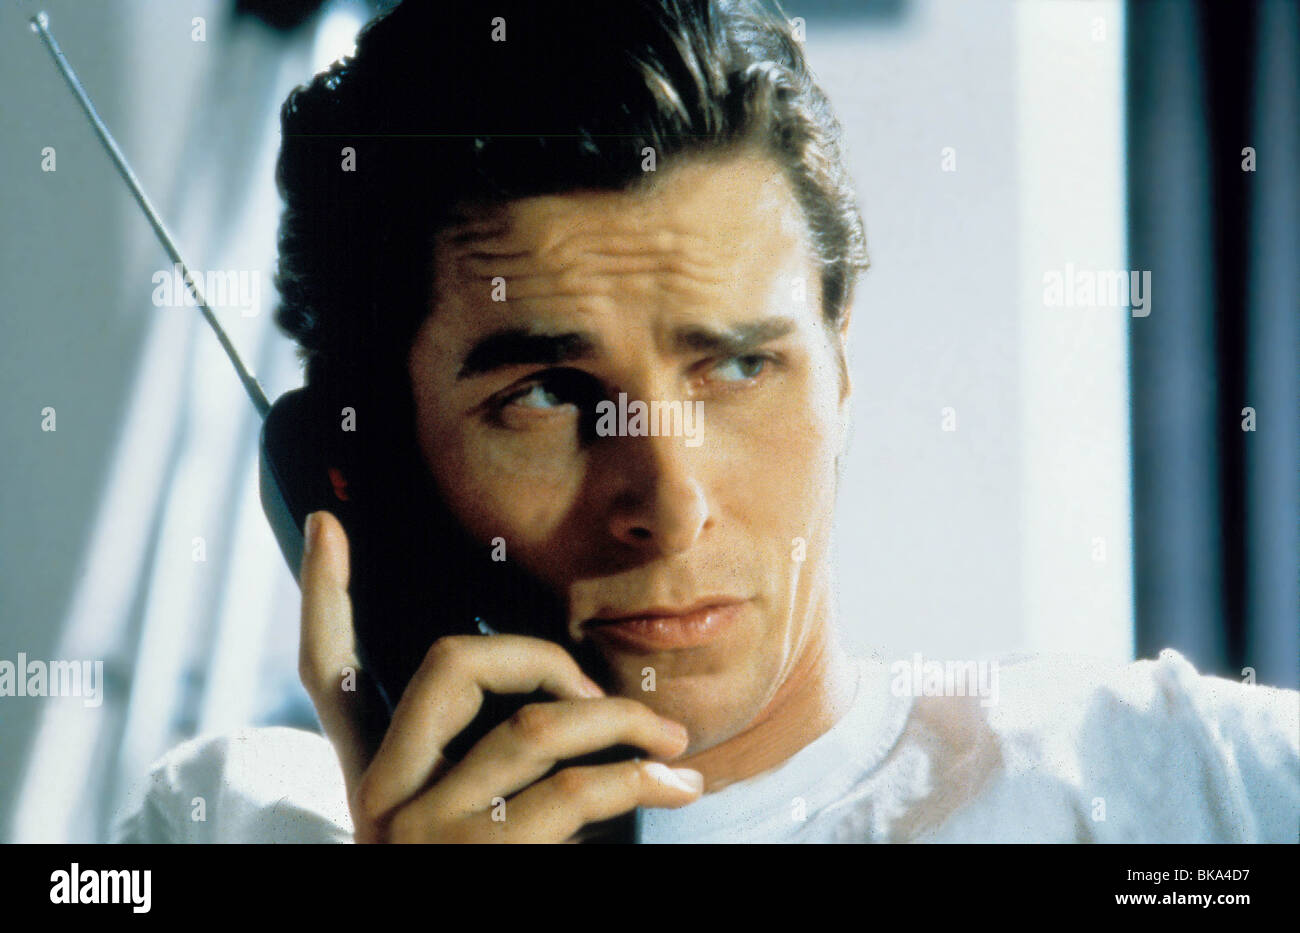 American Psycho Film Stock Photos American Psycho Film